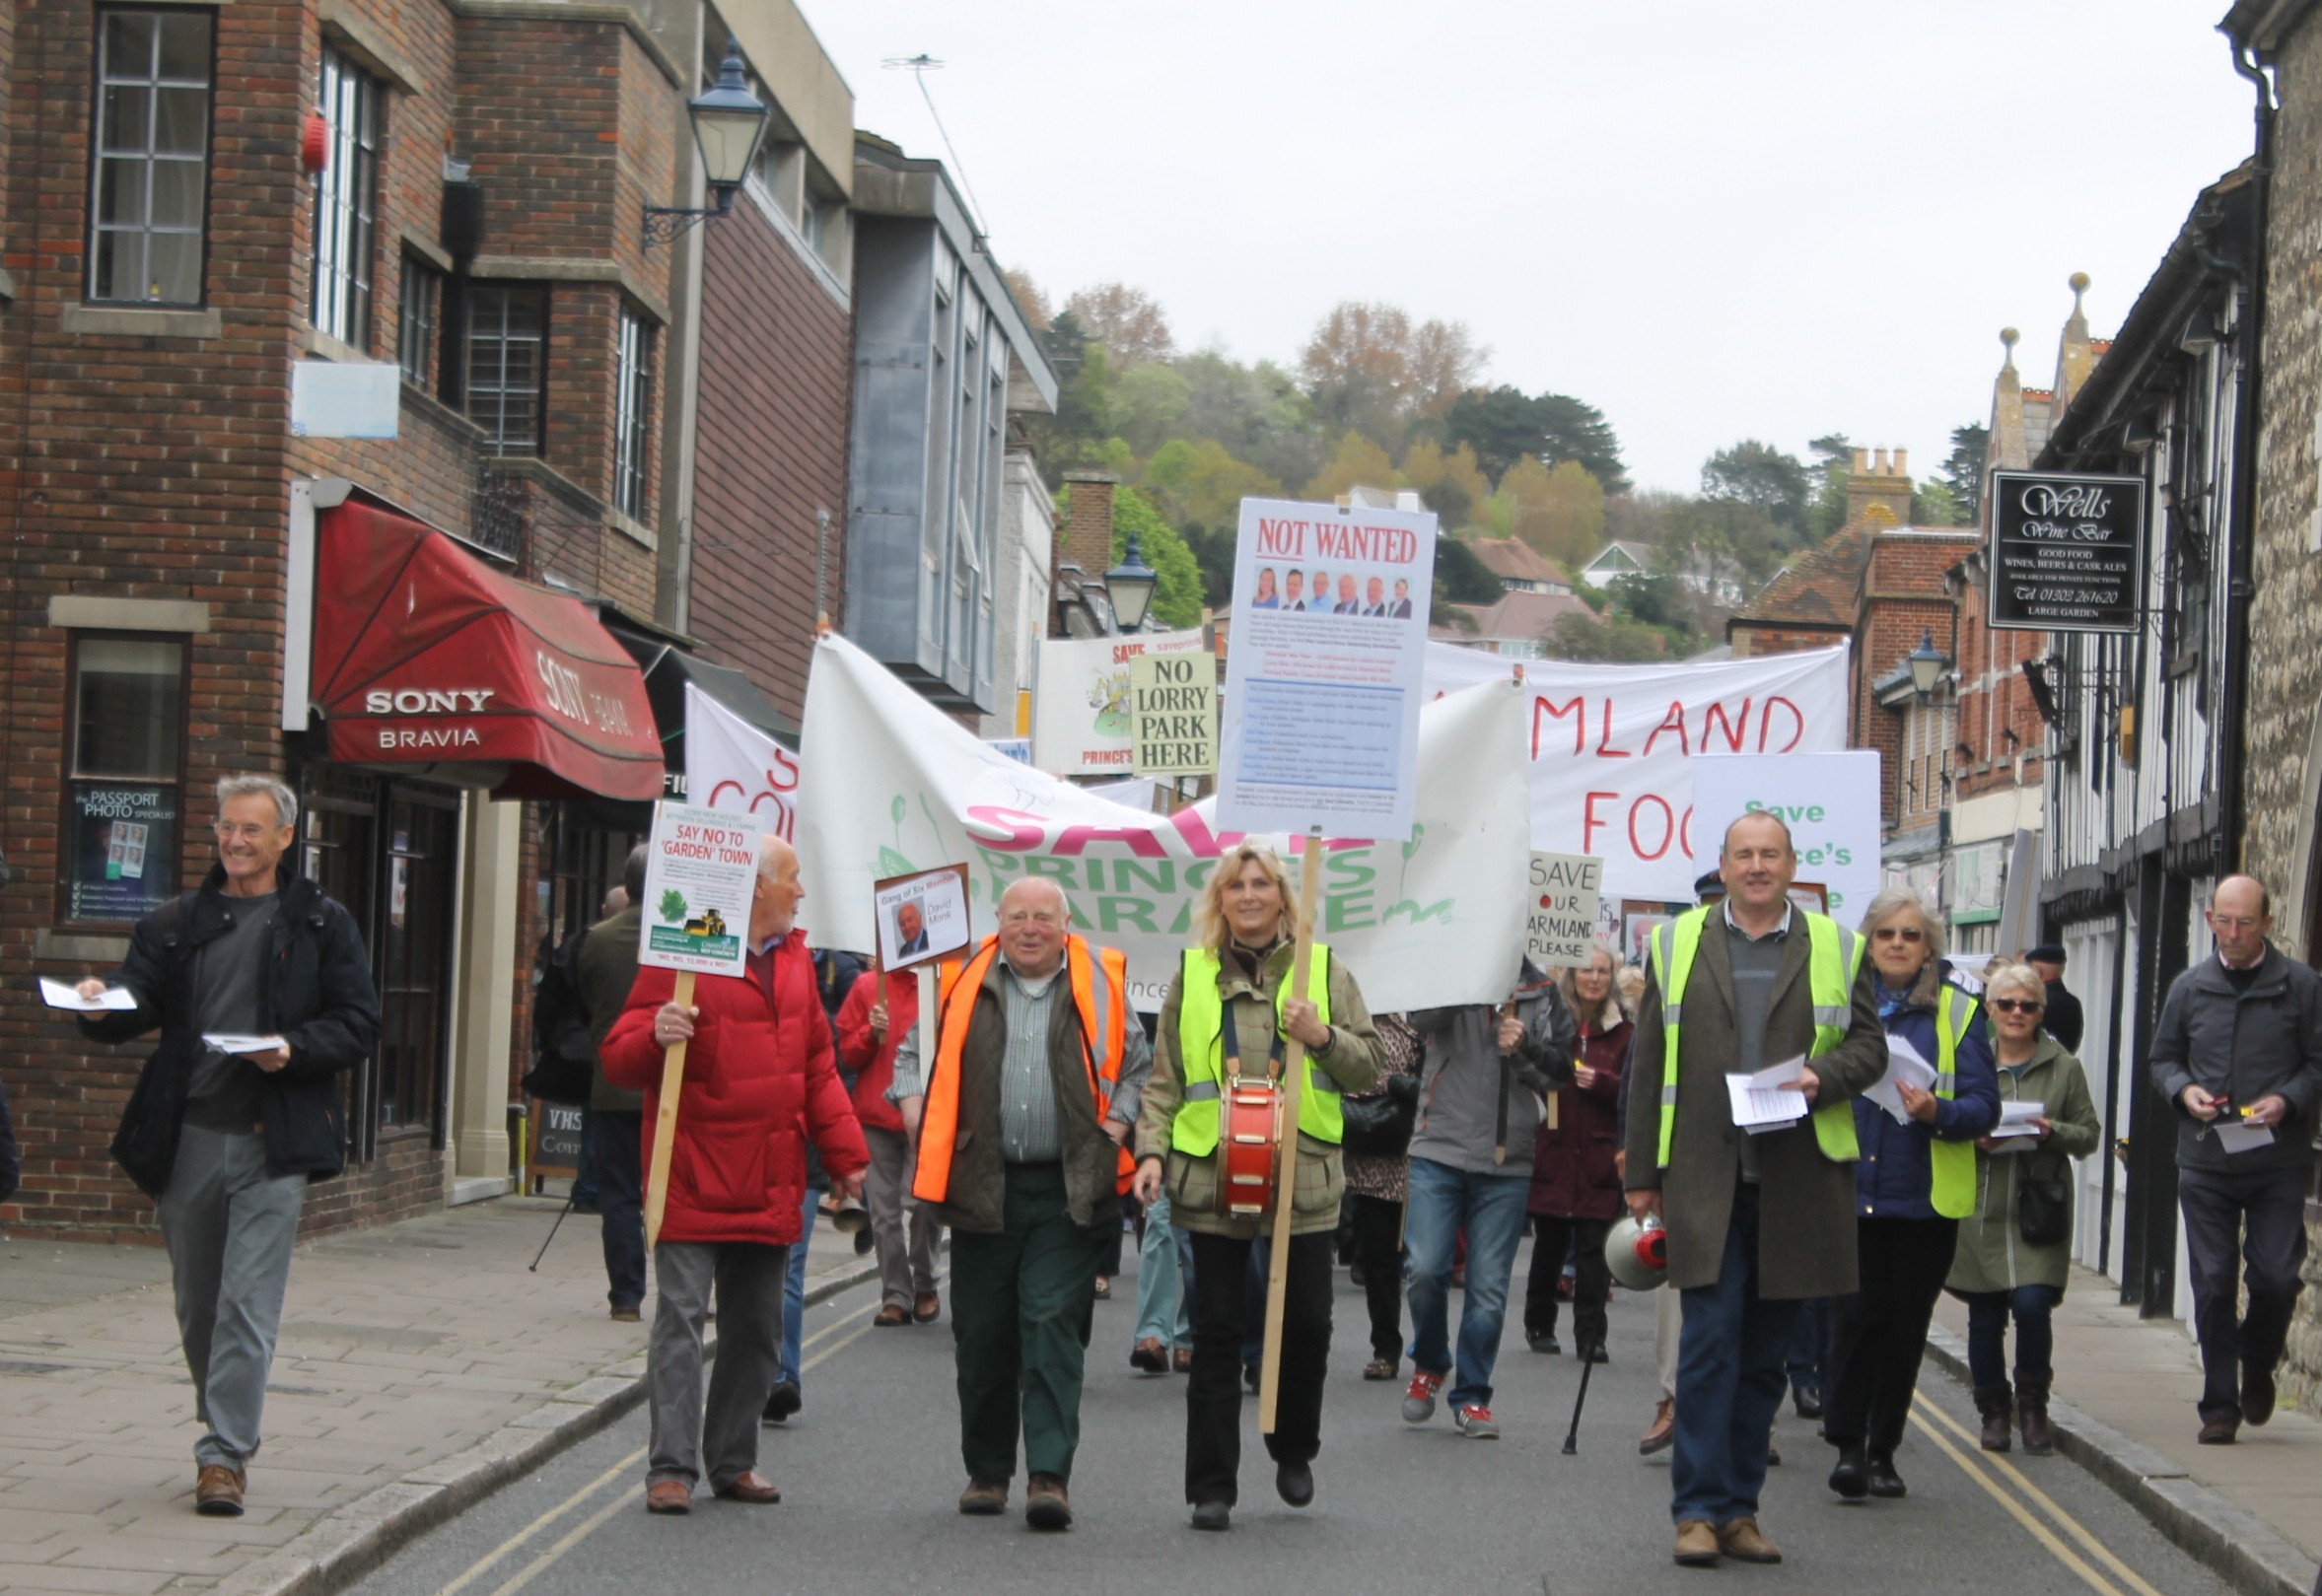 Protesters march on Hythe to rattle District Council's cage